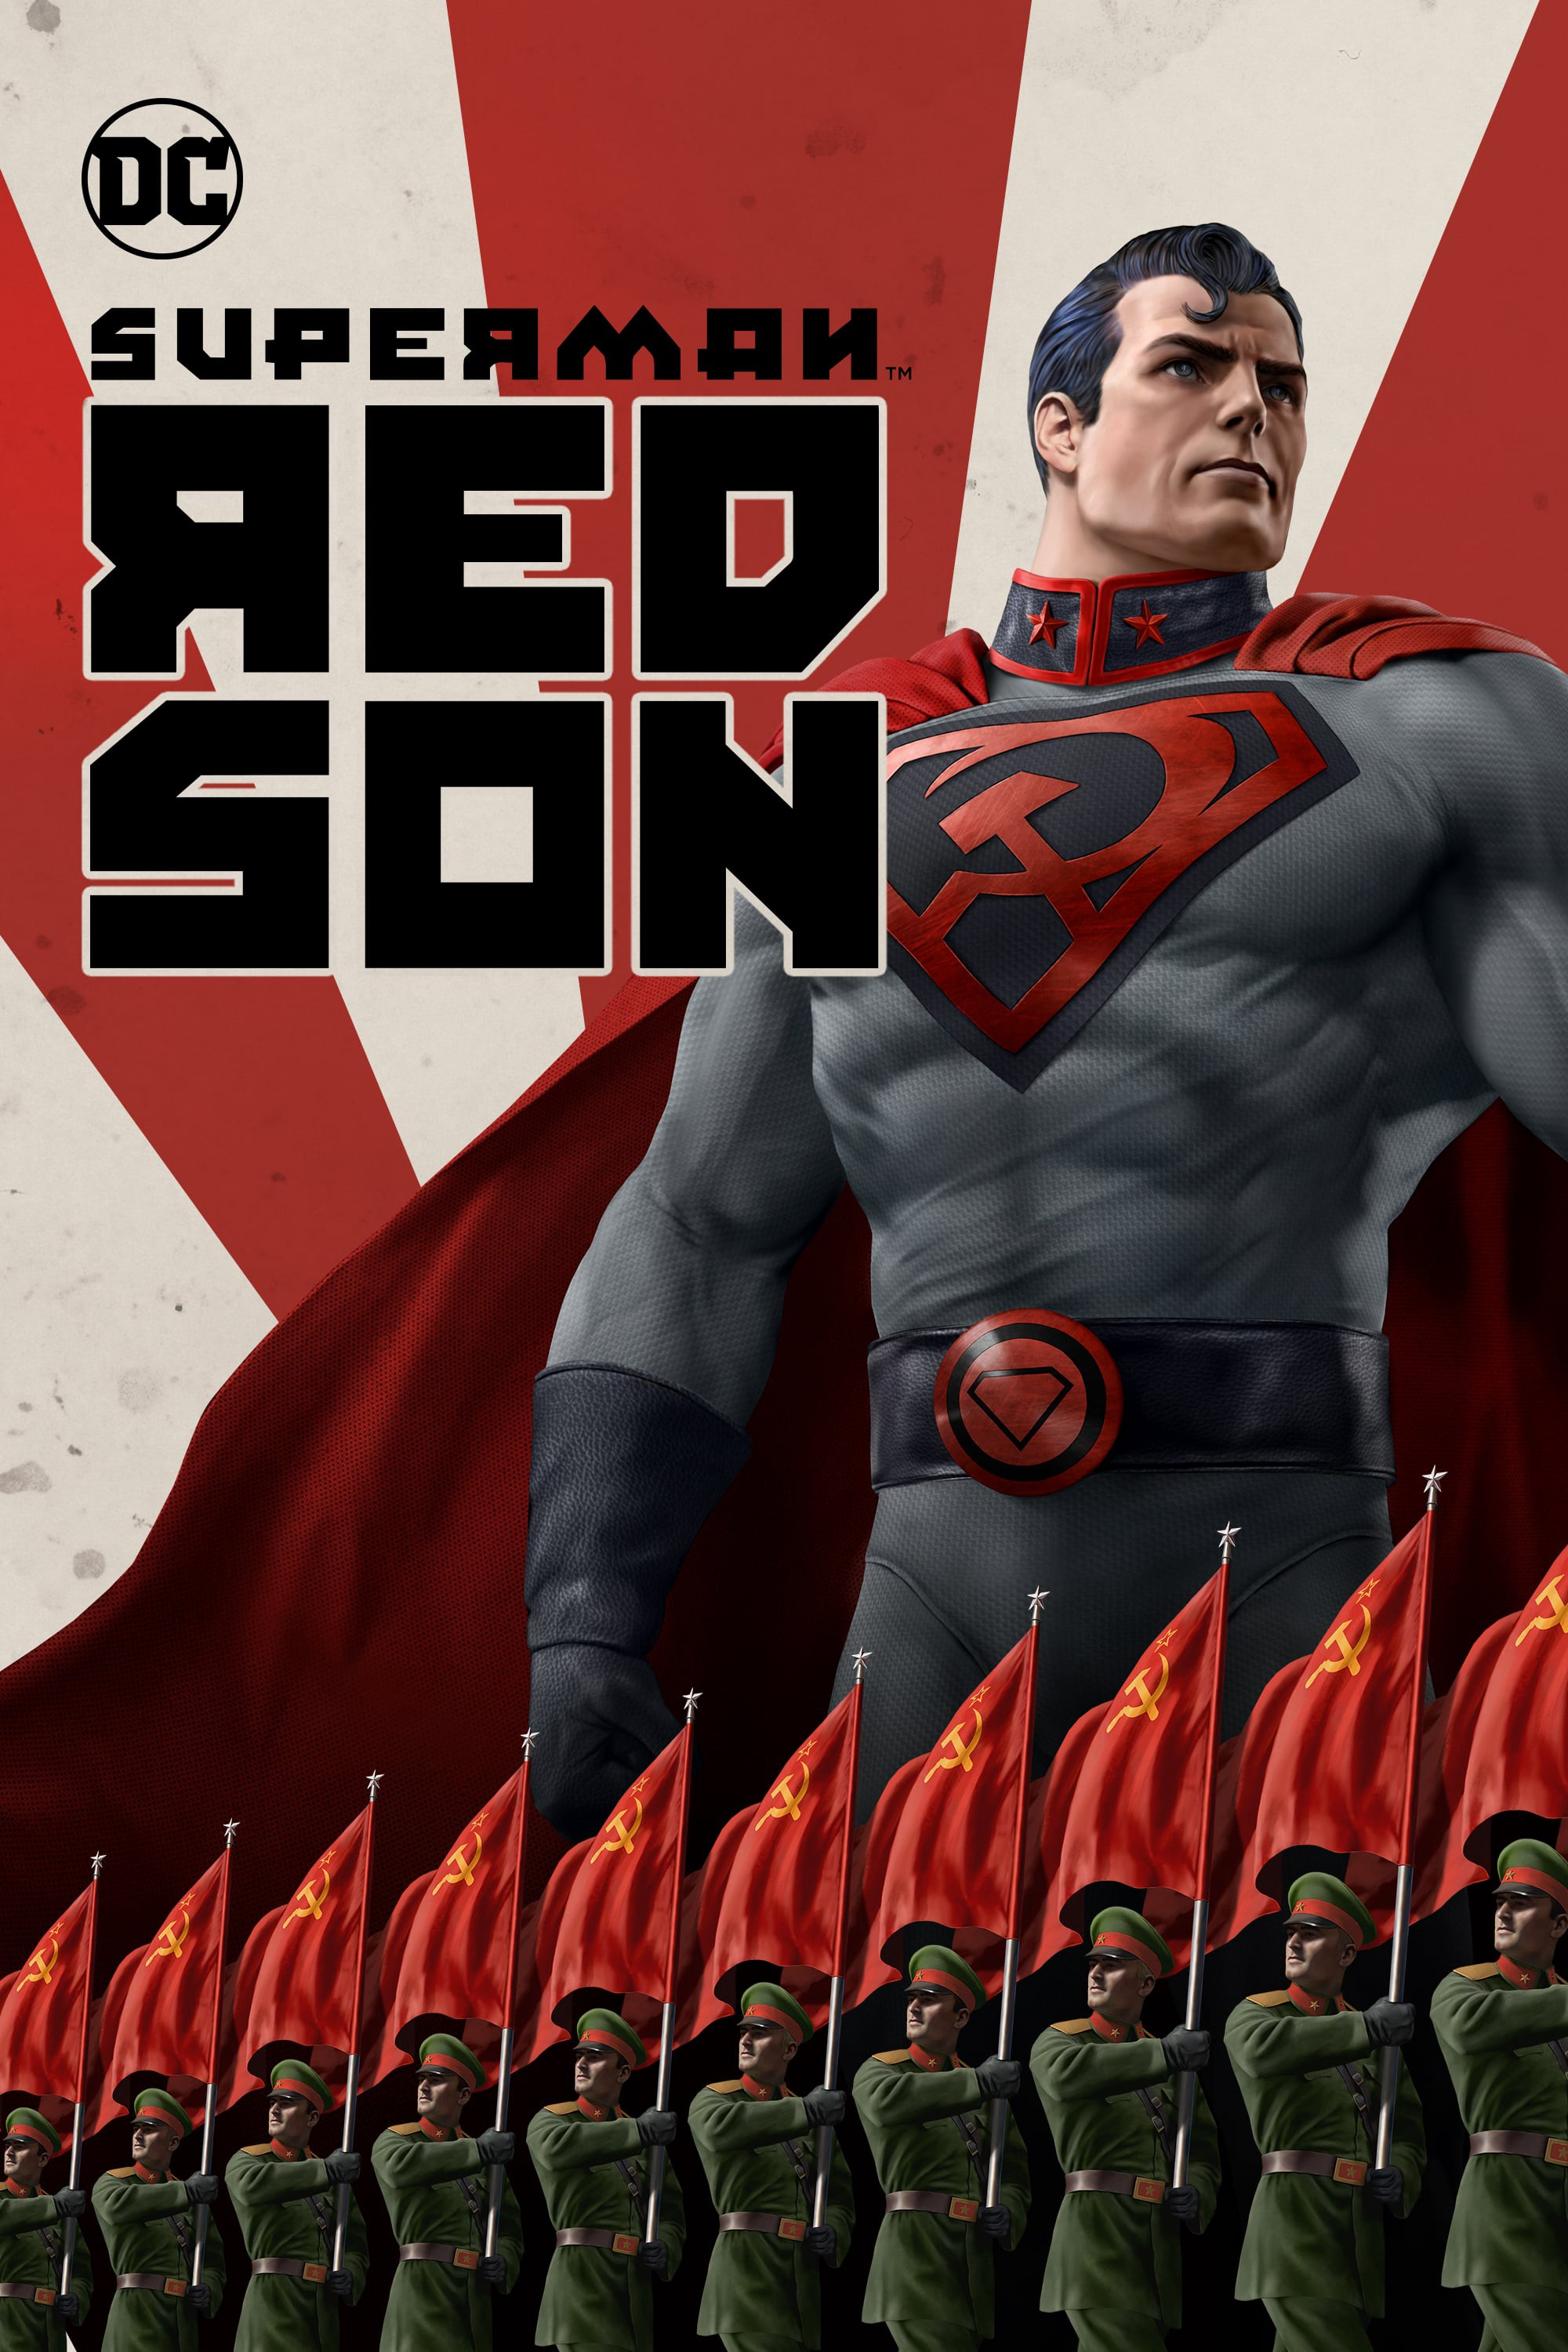 SUPERMENAS. RAUDONASIS SŪNUS (2020) /SUPERMAN: RED SON